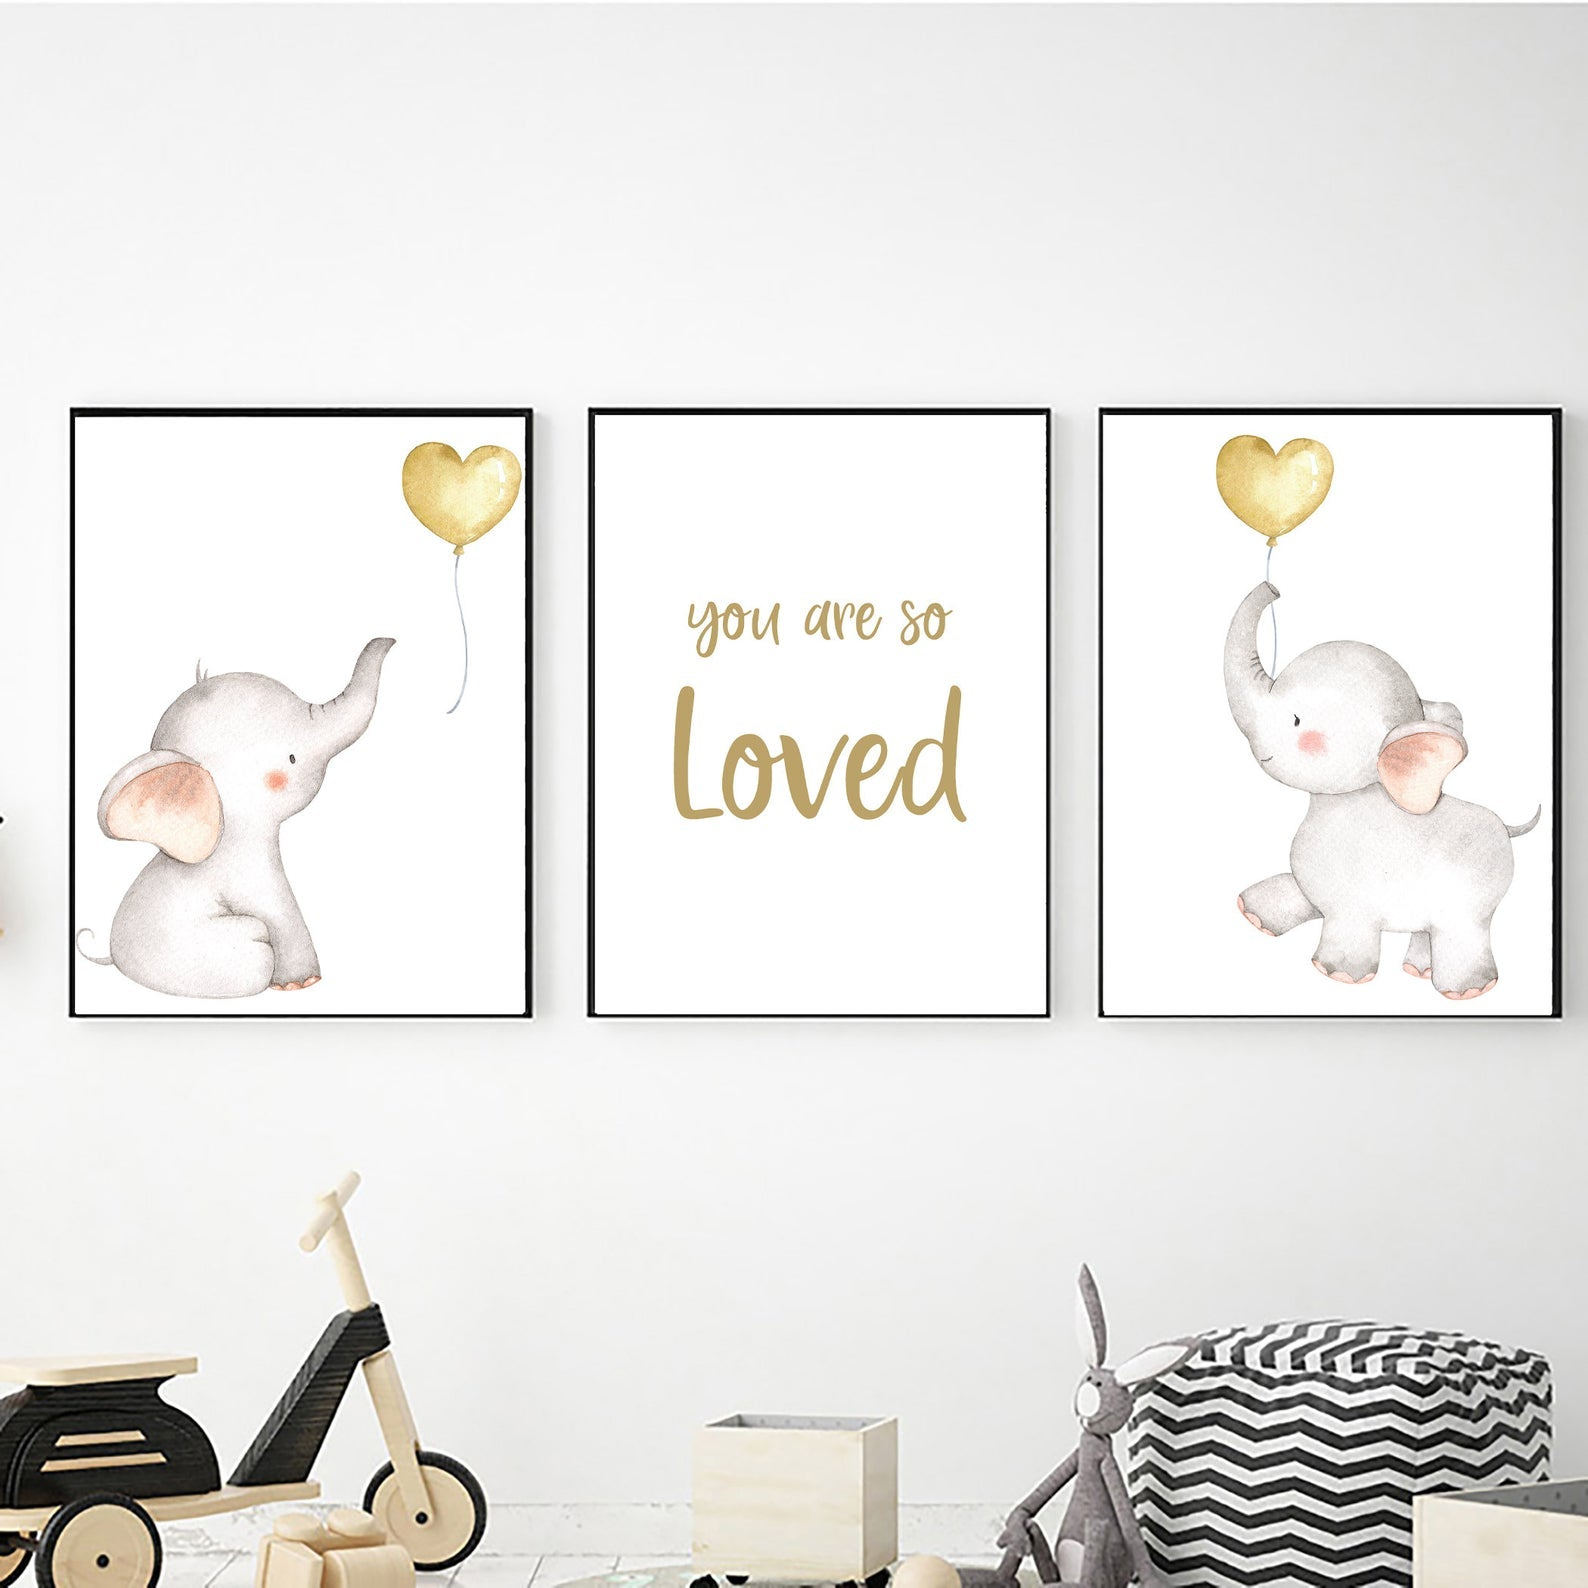 Ellie Gold Balloons freeshipping - Beautiful Spaces Store